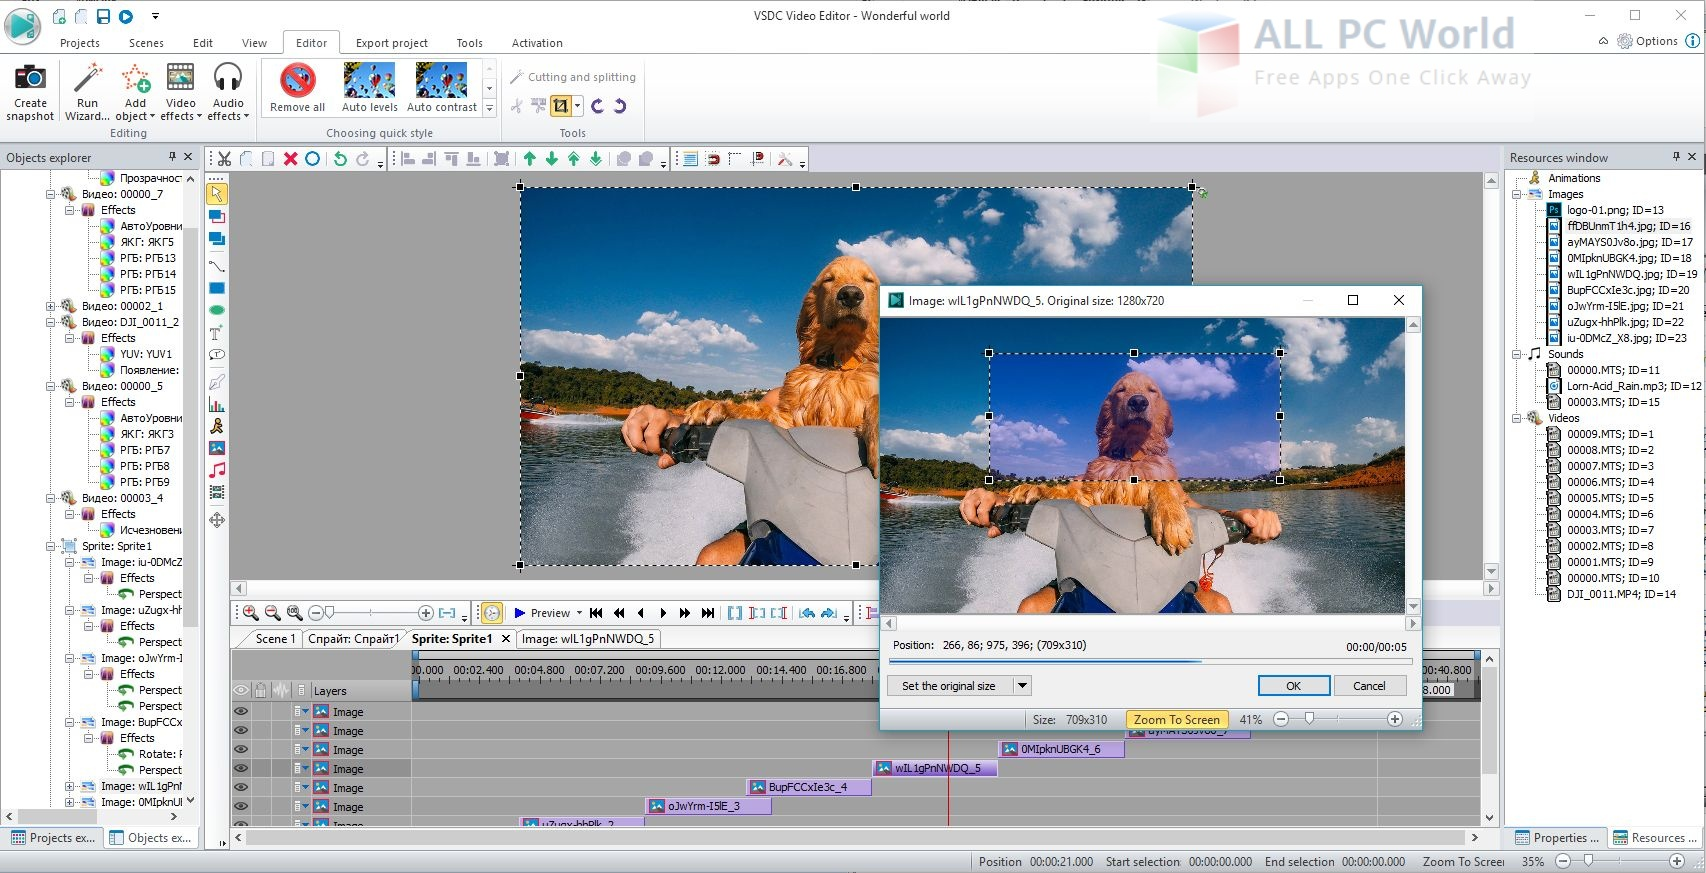 Download VSDC Video Editor Pro v5 7 3 644 Final Free - ALL